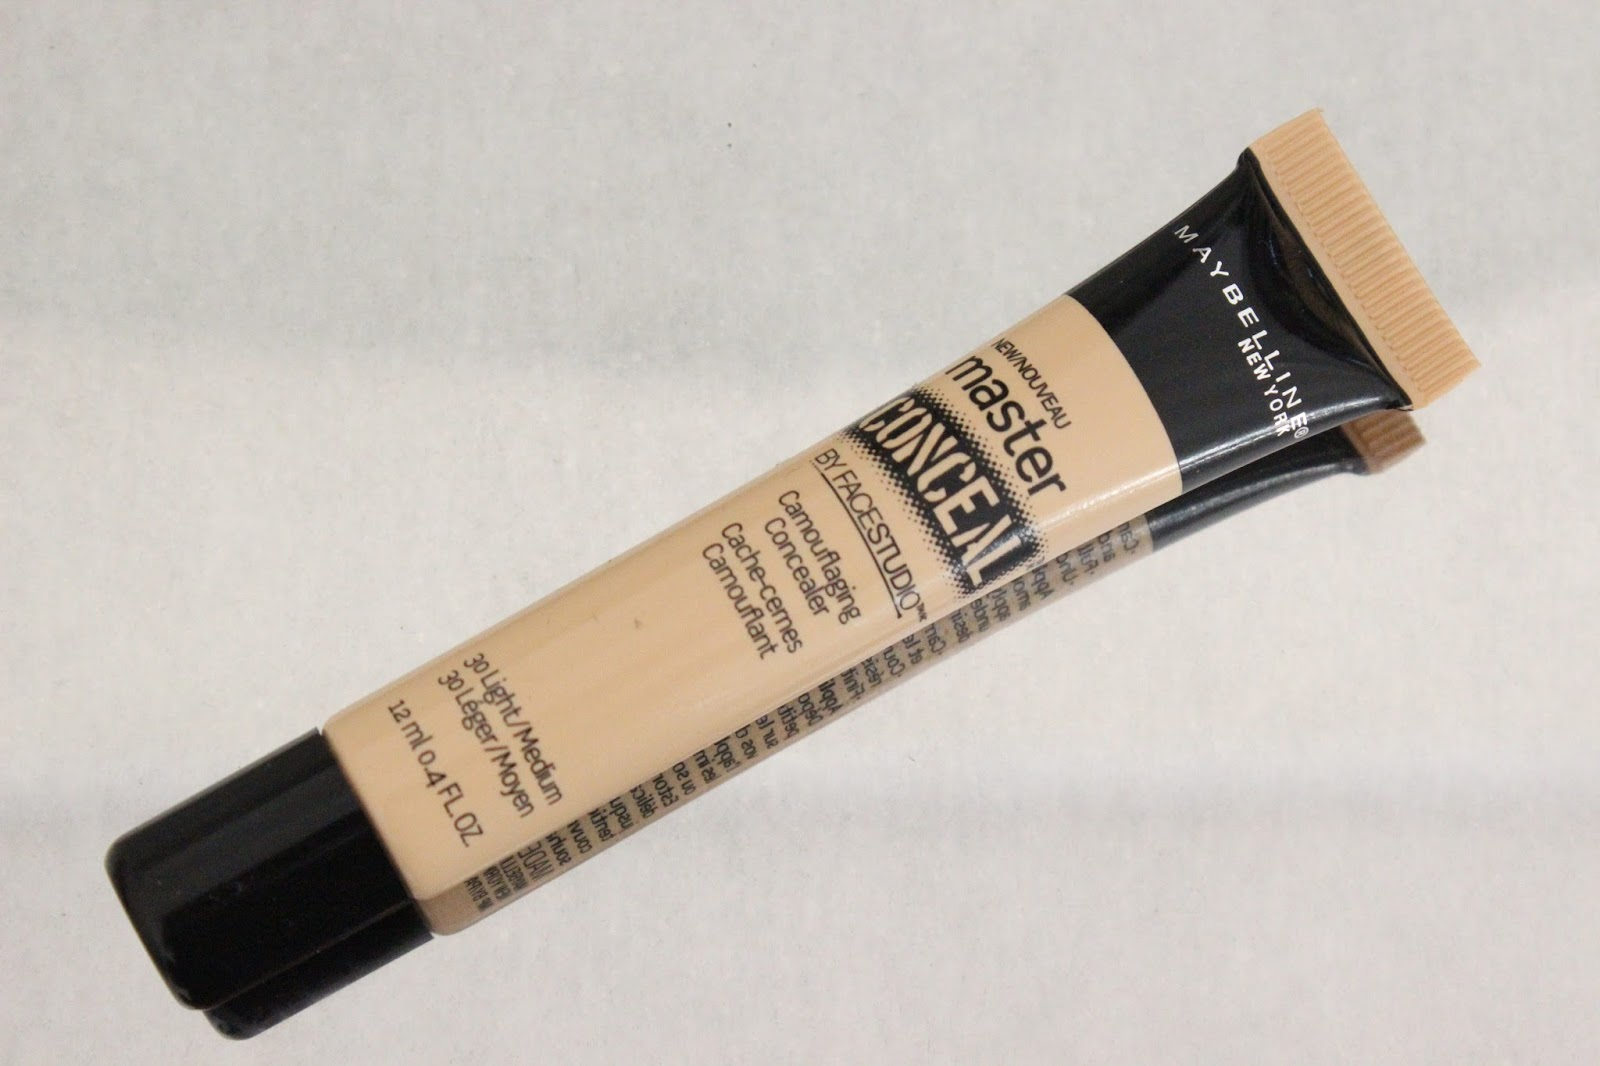 Maybelline Master Concealer Review A Little Pop Of Coral